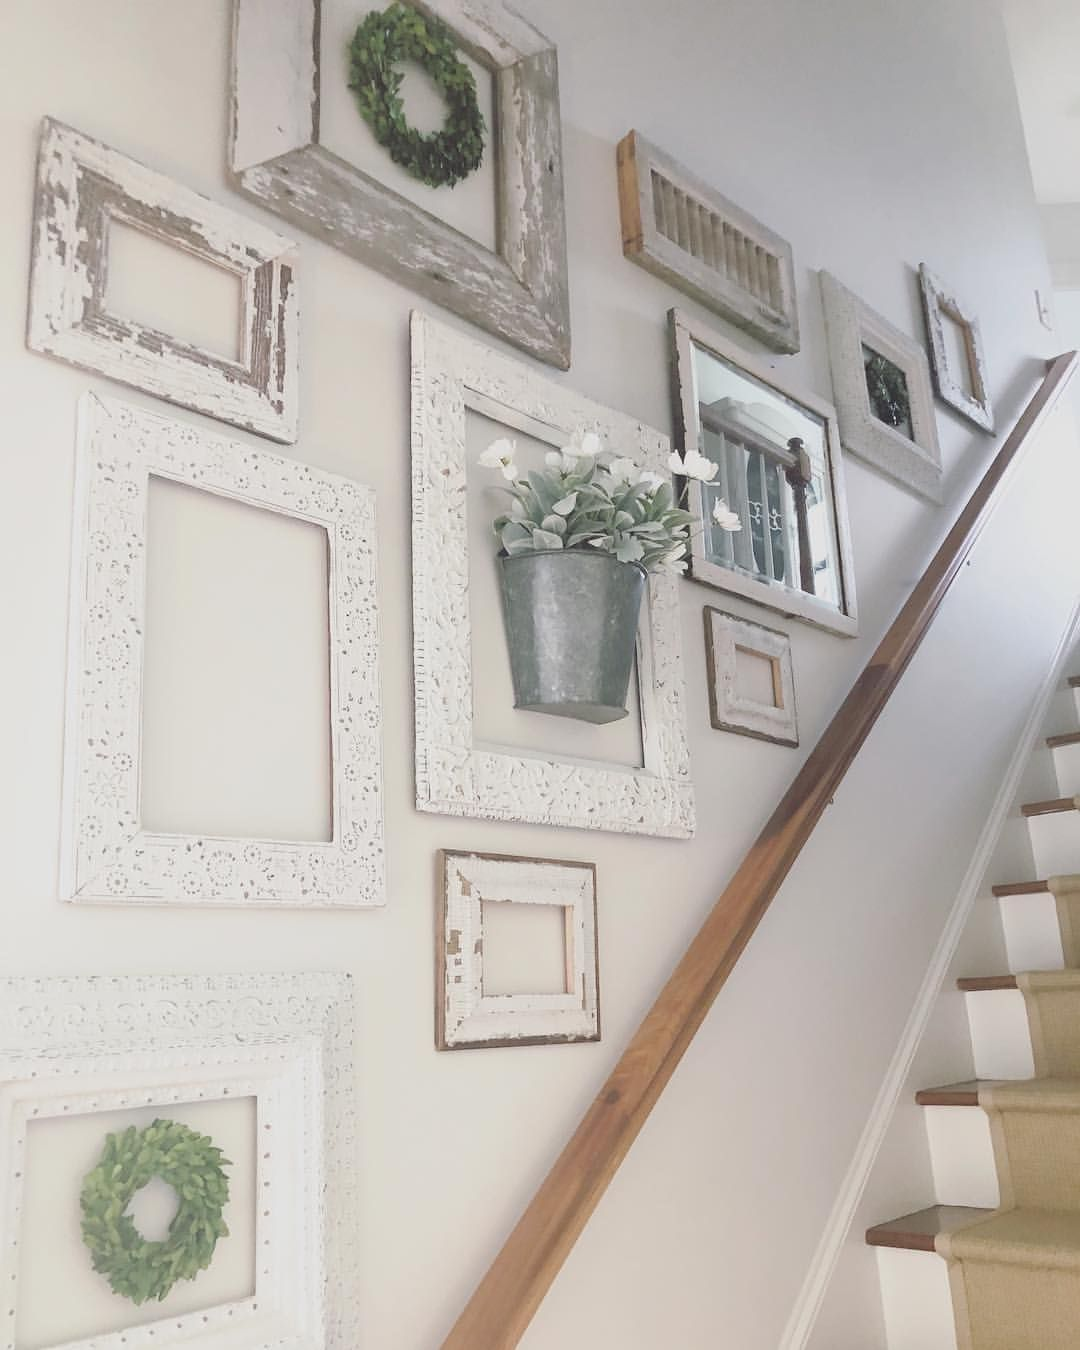 Staircase Walls Are Sometimes The Hardest To Decorate Grouping Like Items Together And Keeping Staircase Wall Decor Decorating Stairway Walls Stair Wall Decor